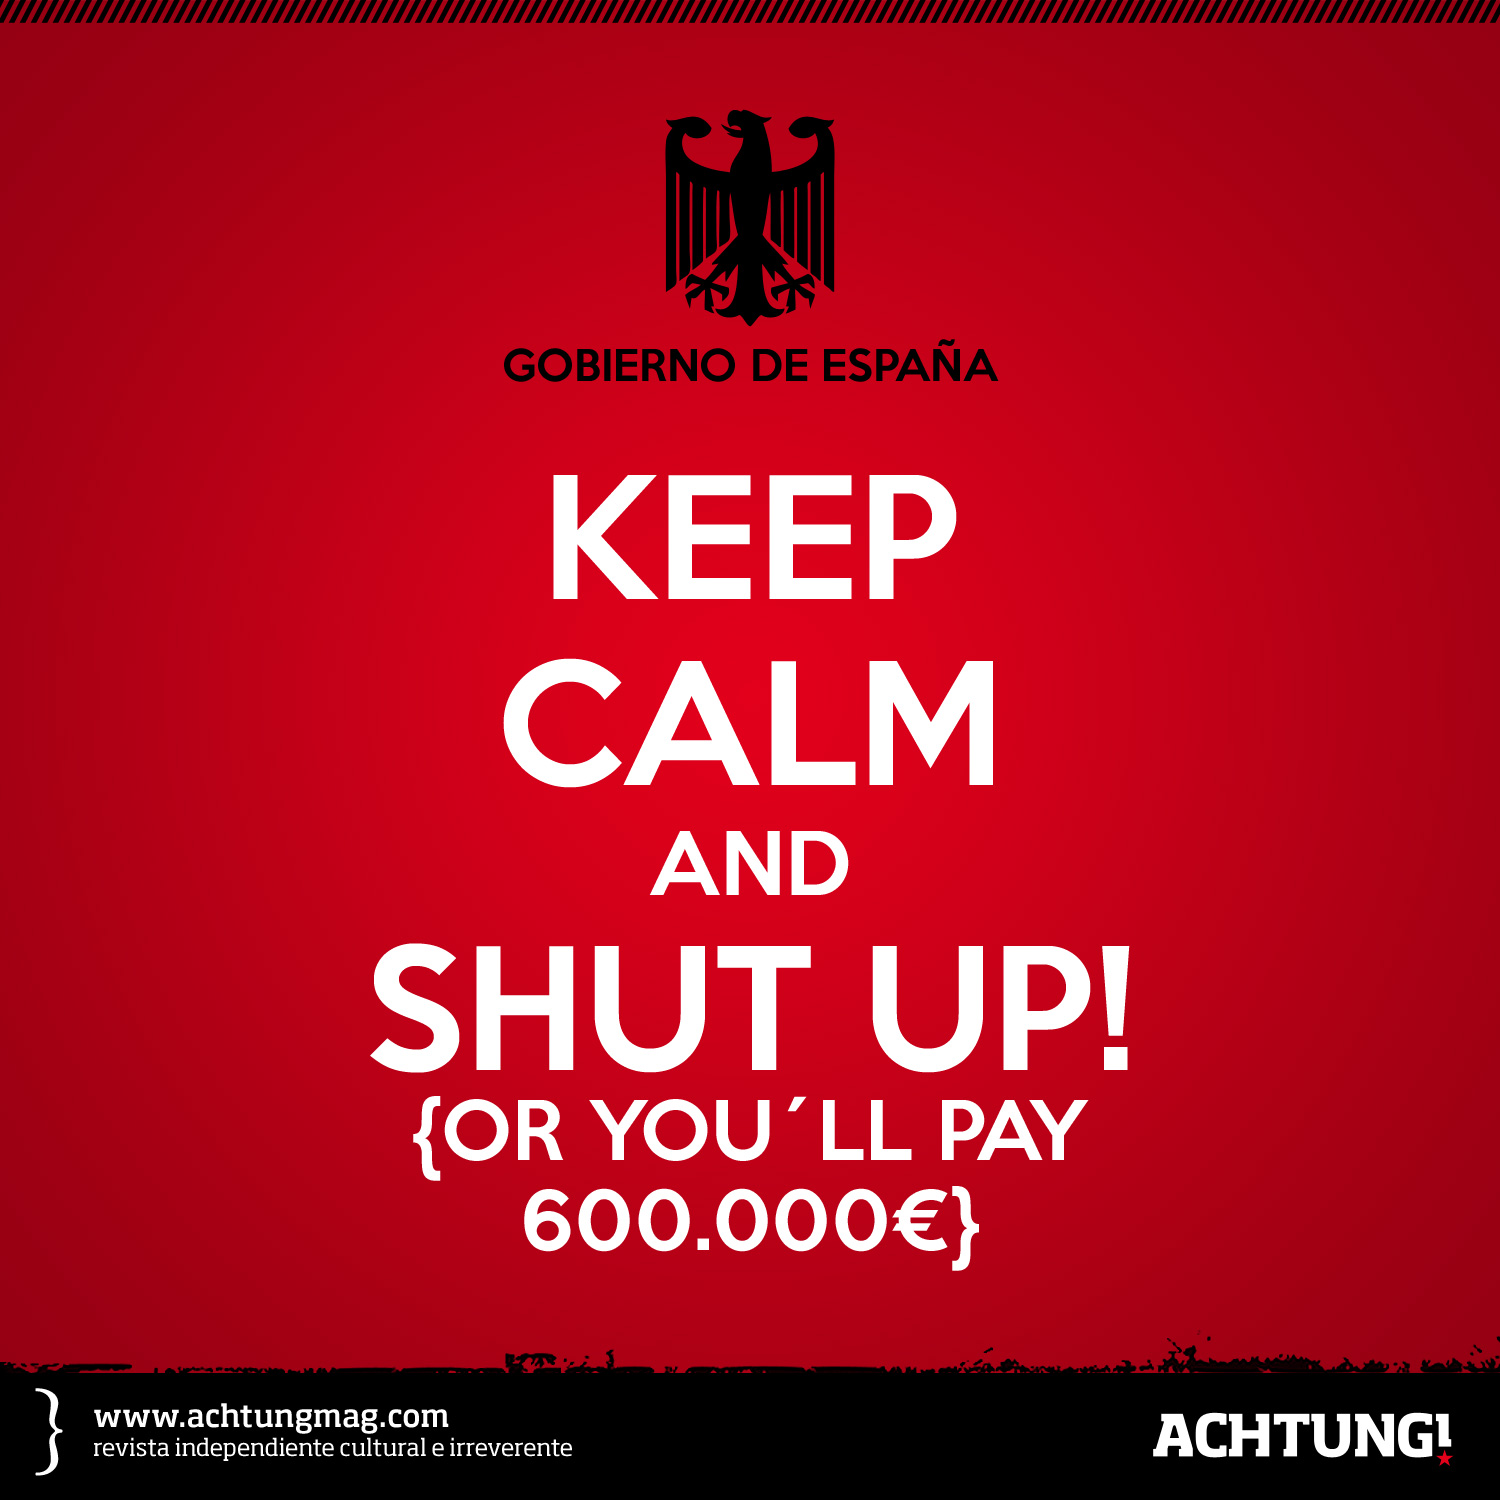 Keep calm and shut up!